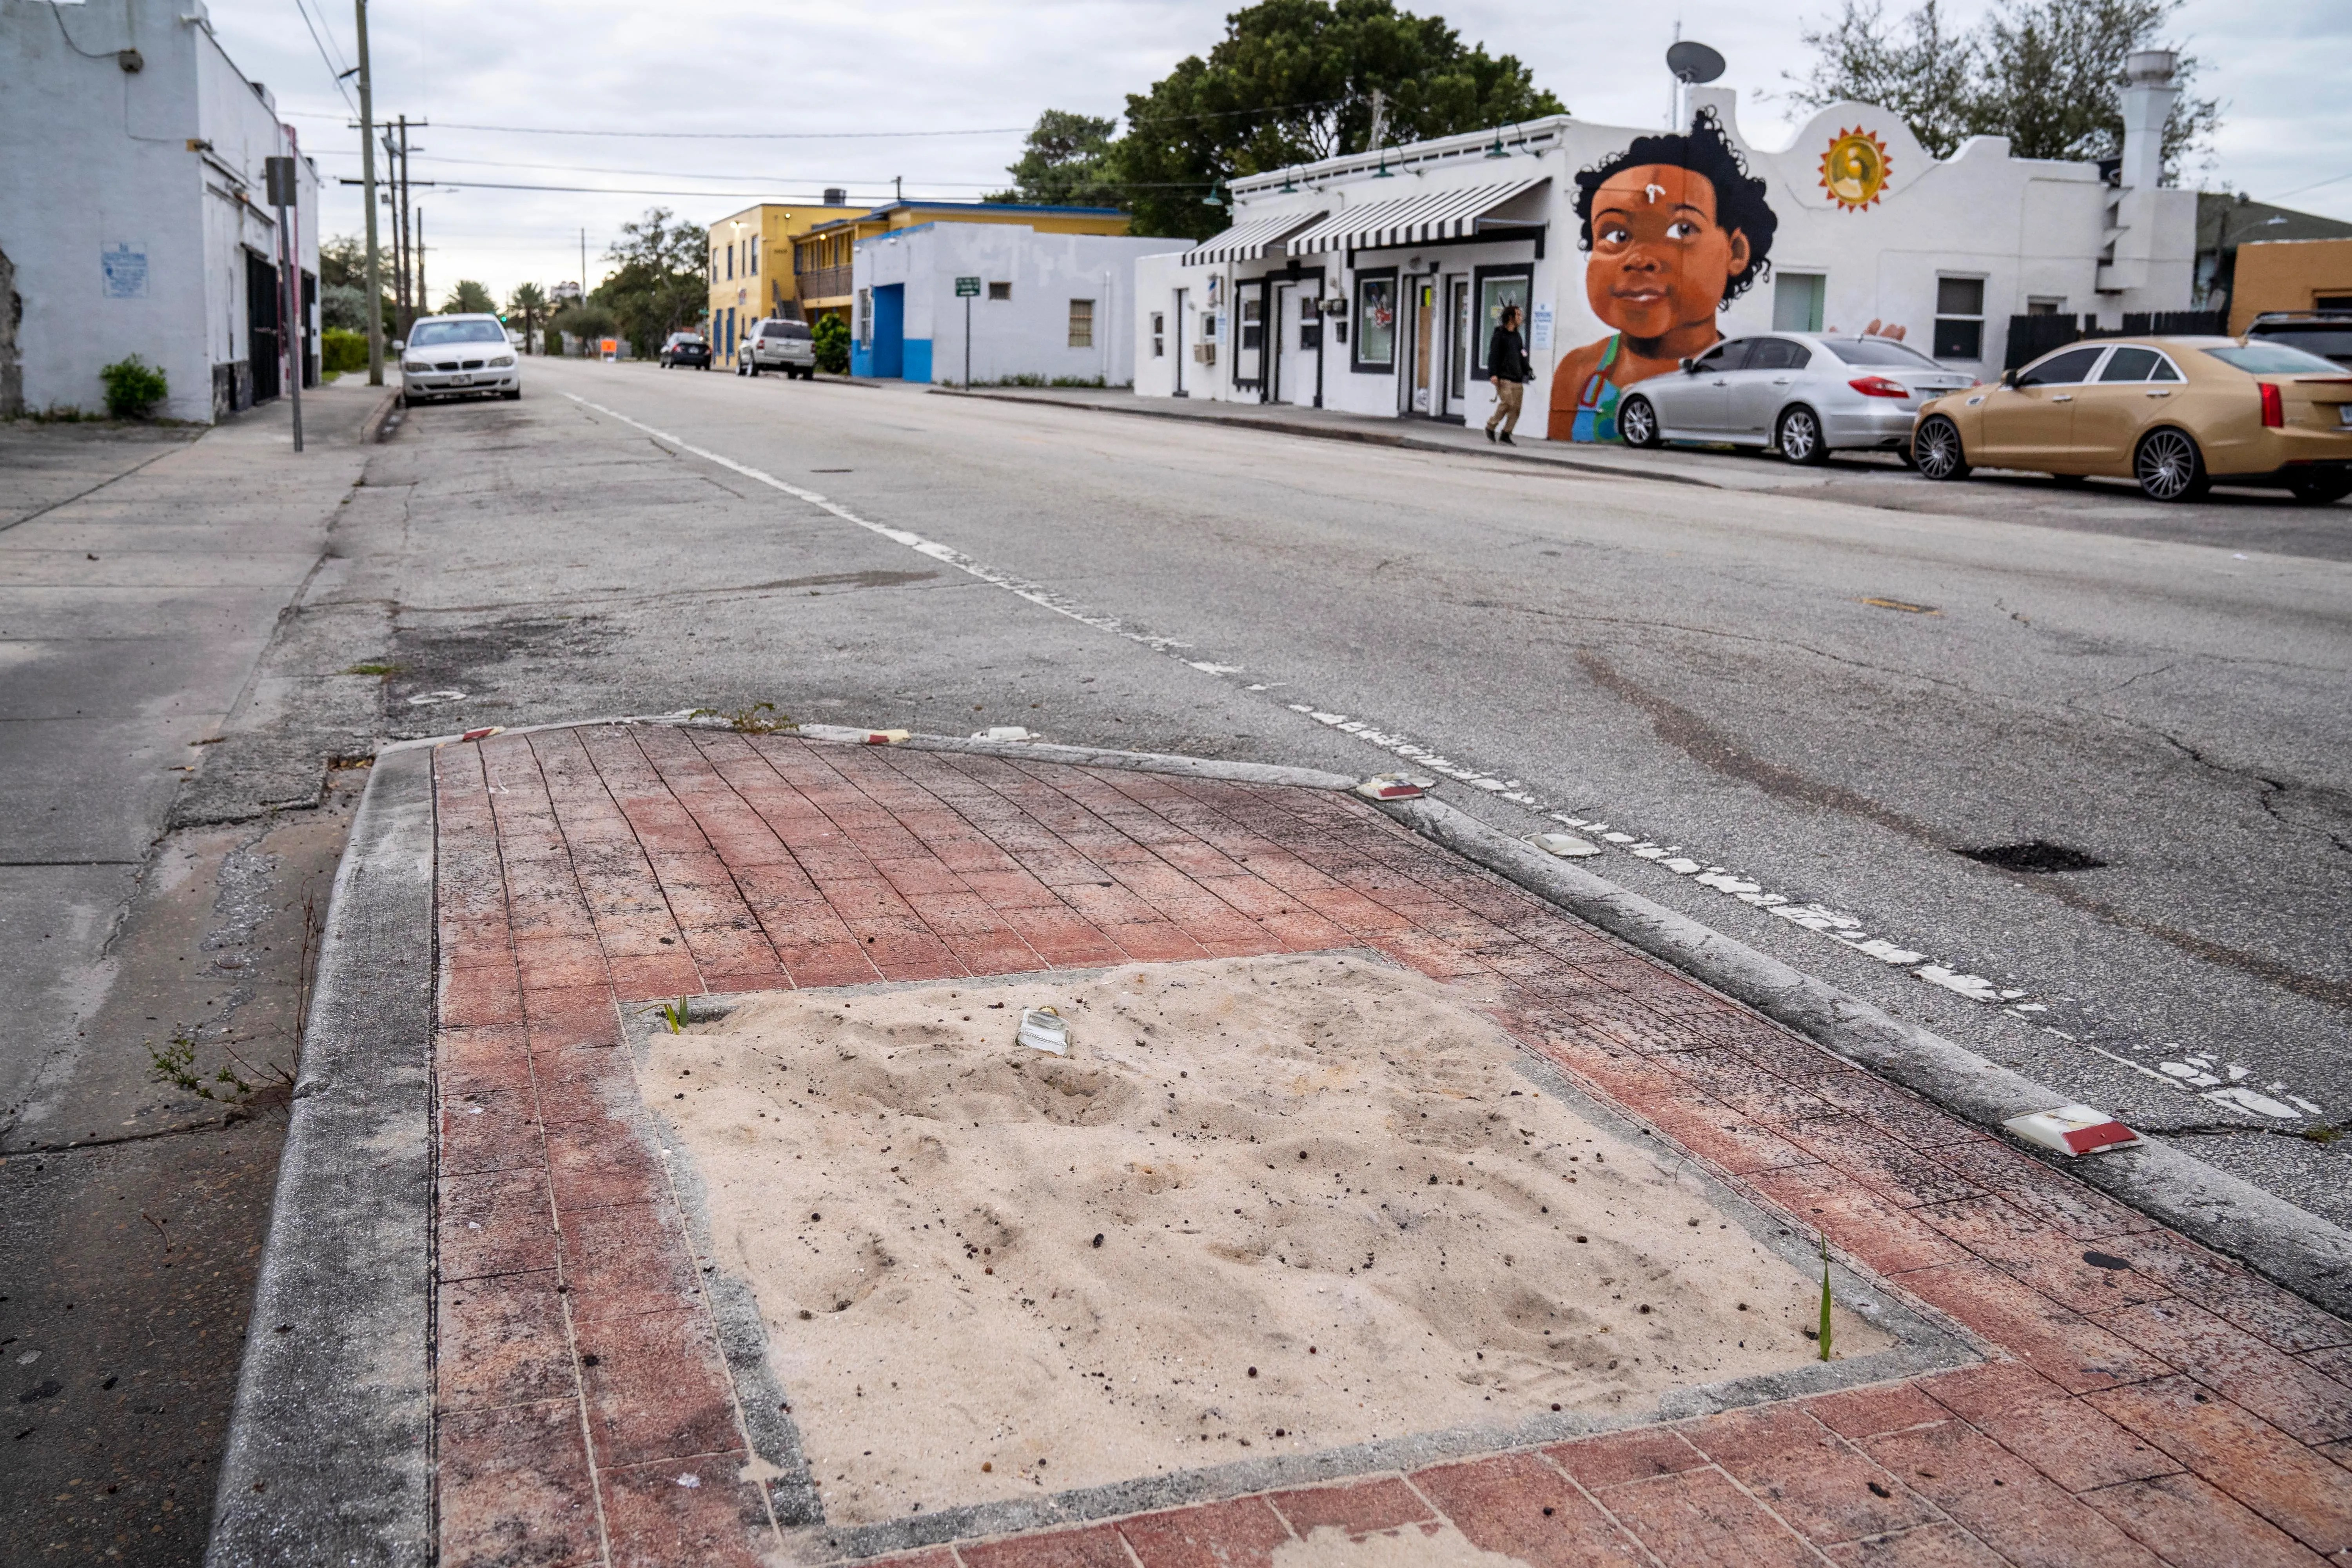 west palm beach getting upscale streetscape